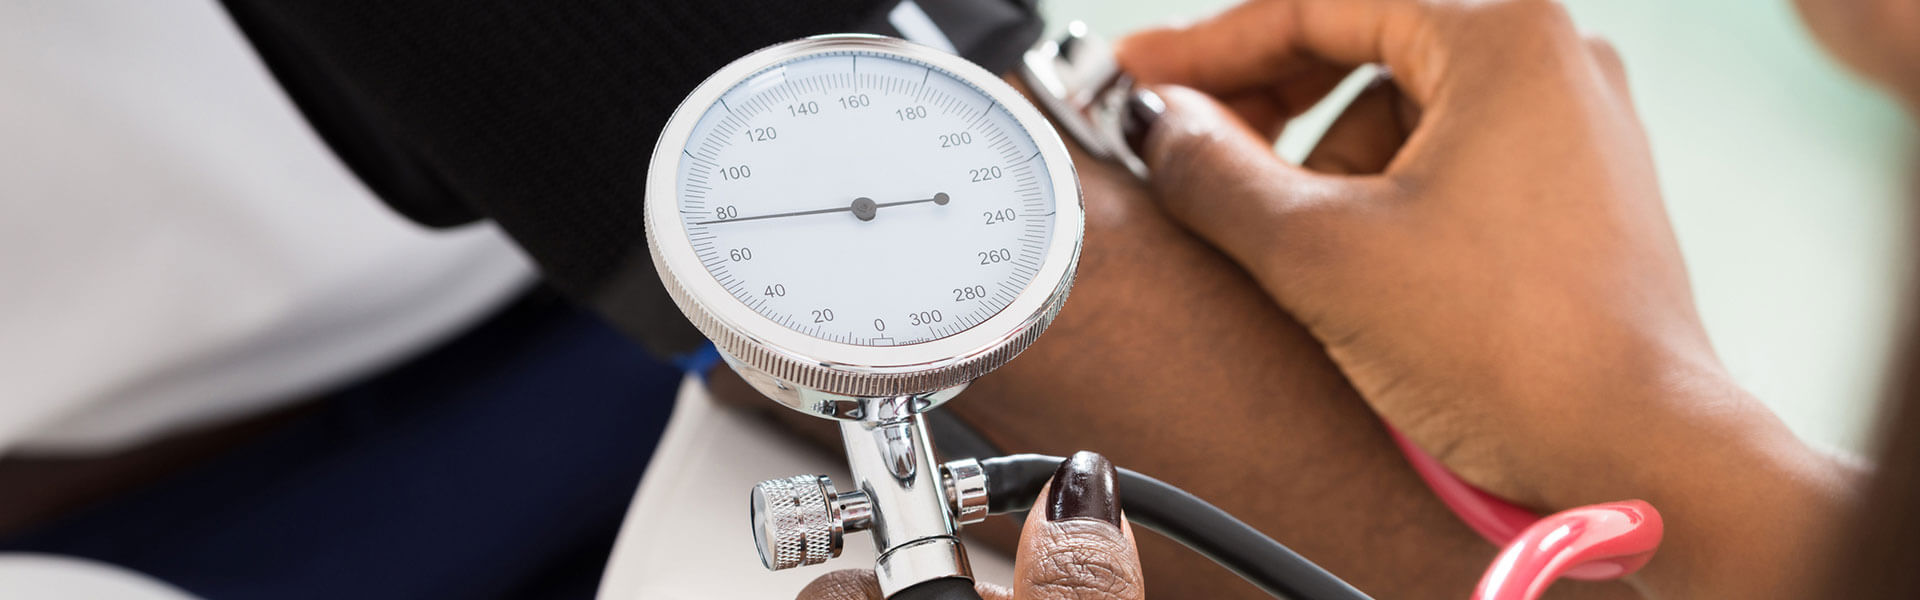 5 Tips for Taking Your Blood Pressure